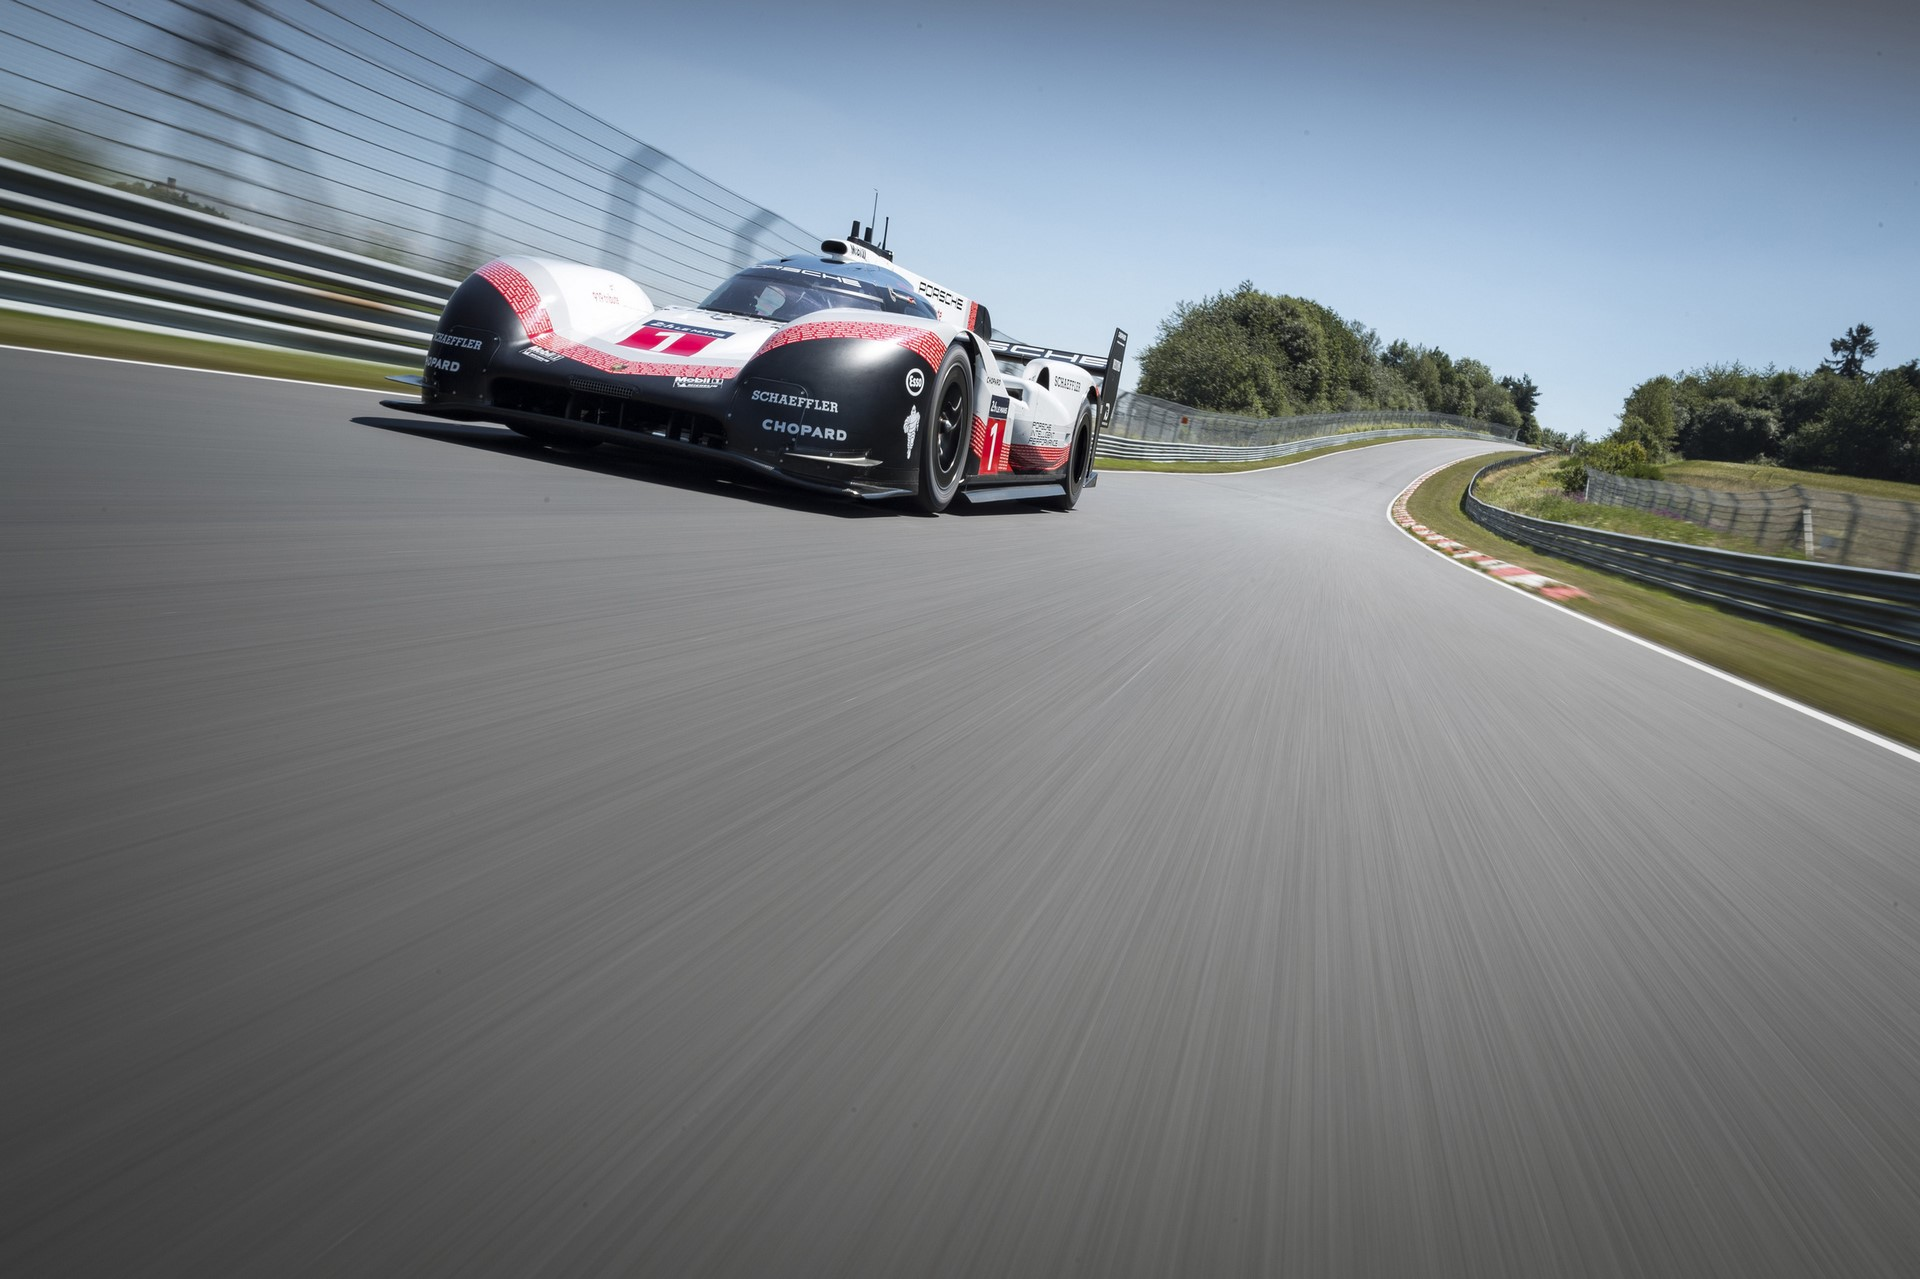 porsche-919-ring-lap-record-003-1